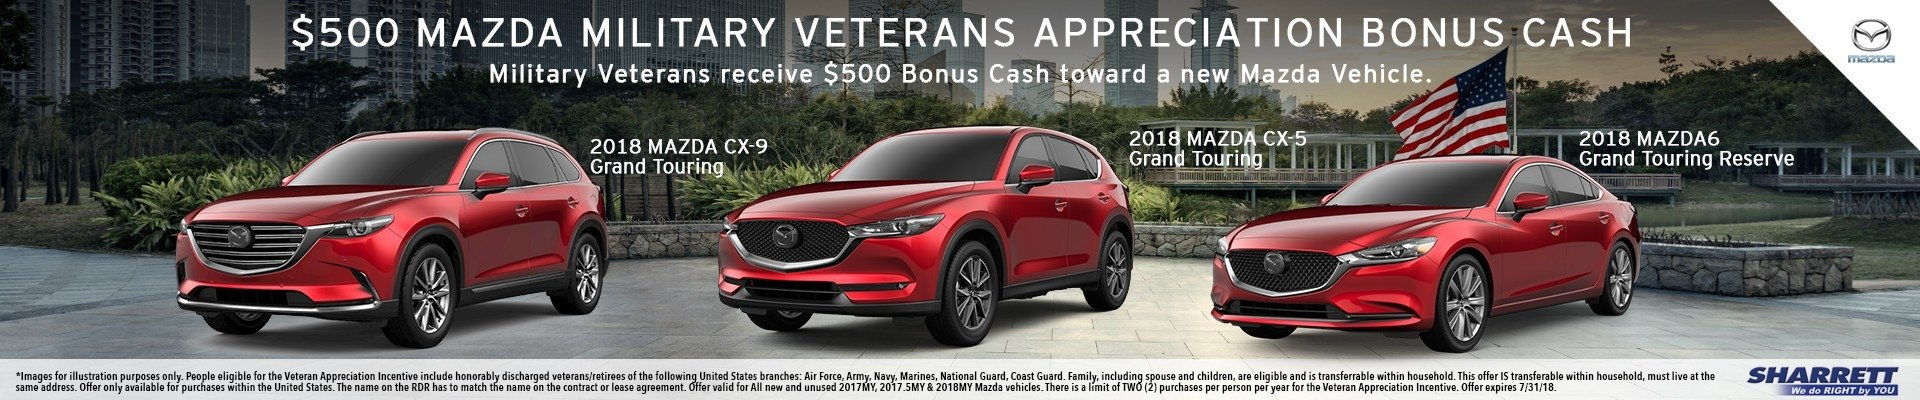 Military Veterans receive $500 Bonus Cash toward a new Mazda Vehicle at Sharrett Mazda